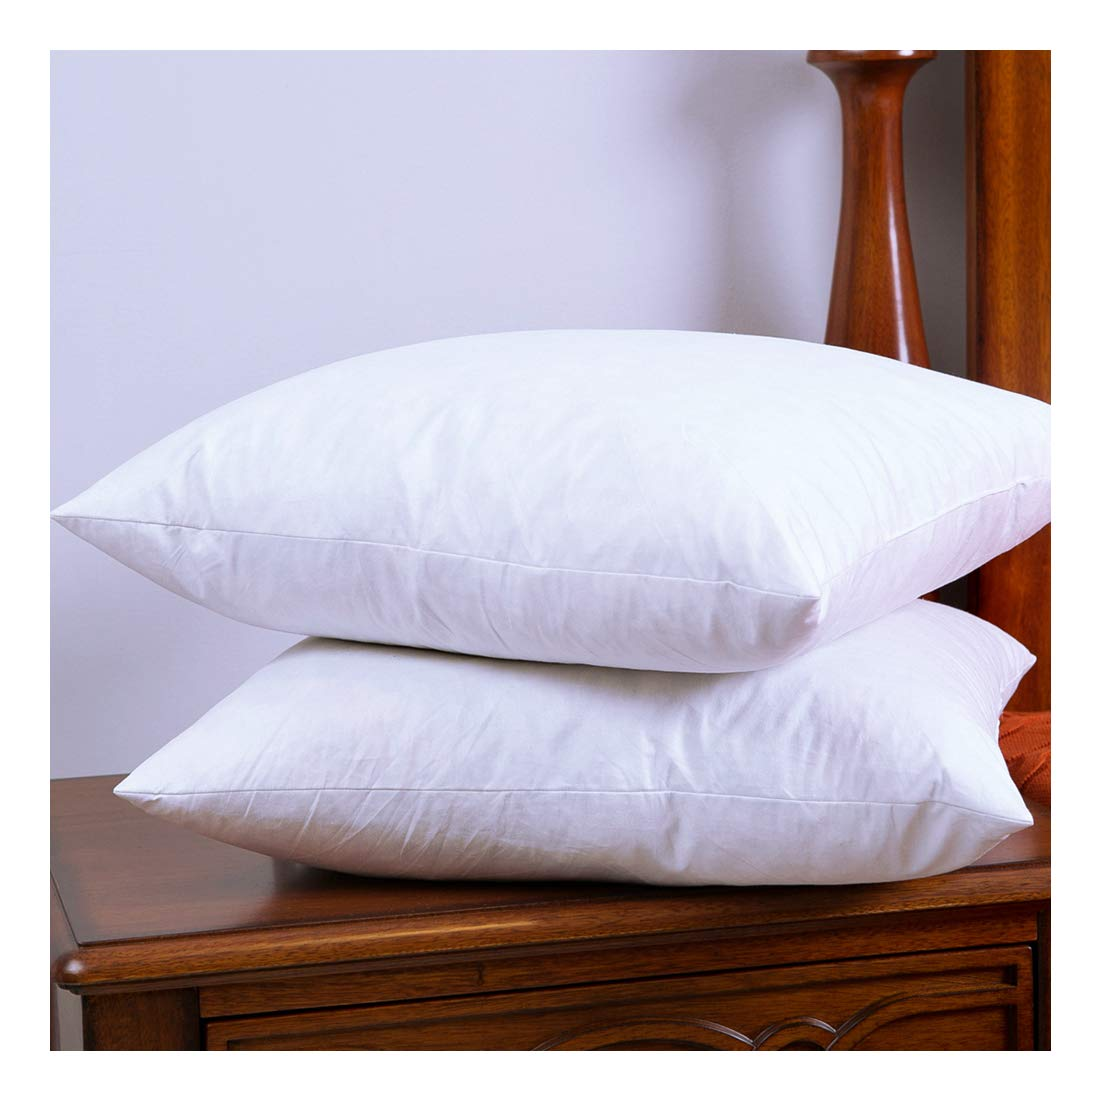 DOWNIGHT 12 X 20 Inches, Two Down and Feather Pillow Inserts, Cotton Fabric Throw Pillows